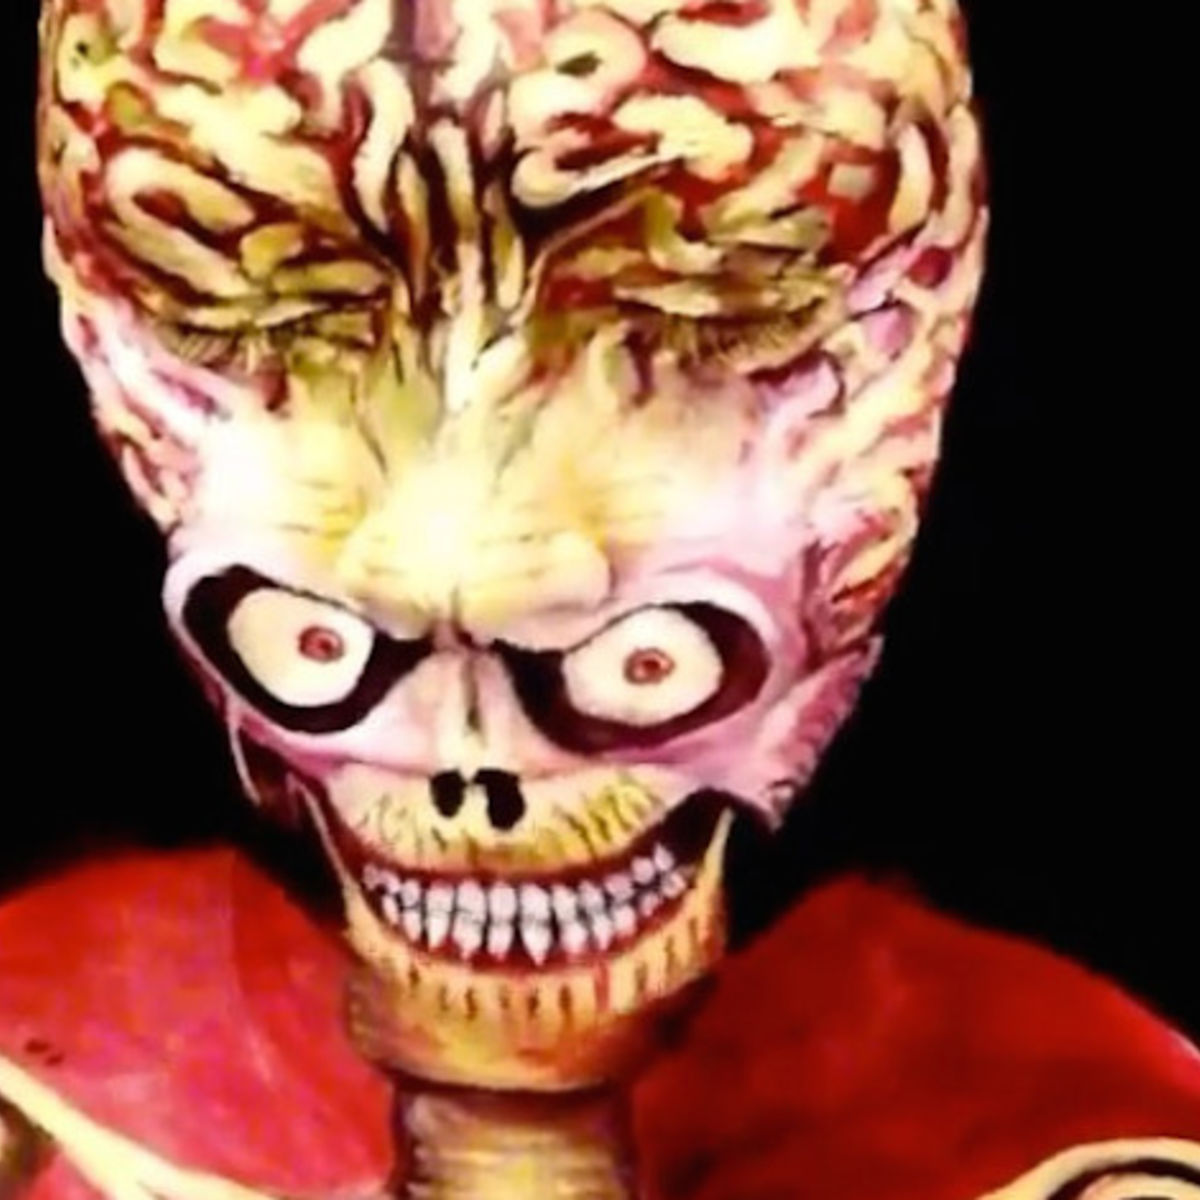 mars-attacks-cosplay.jpg